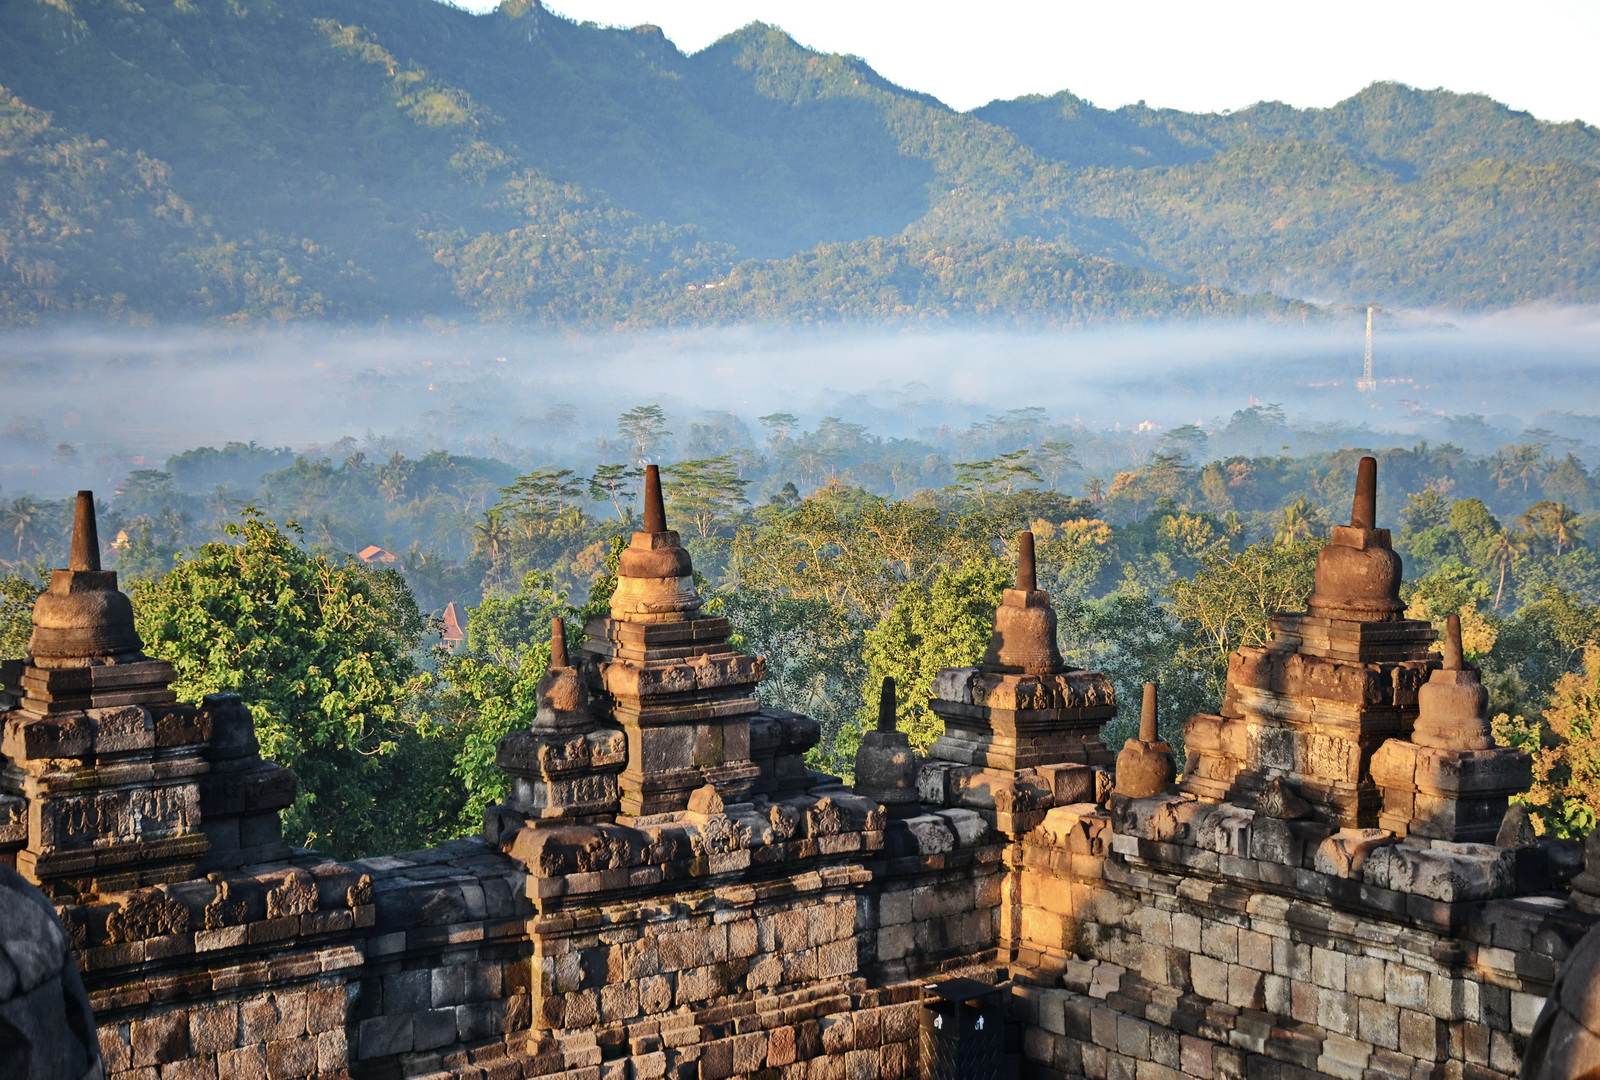 Indonesia, the Kedu Valley setting